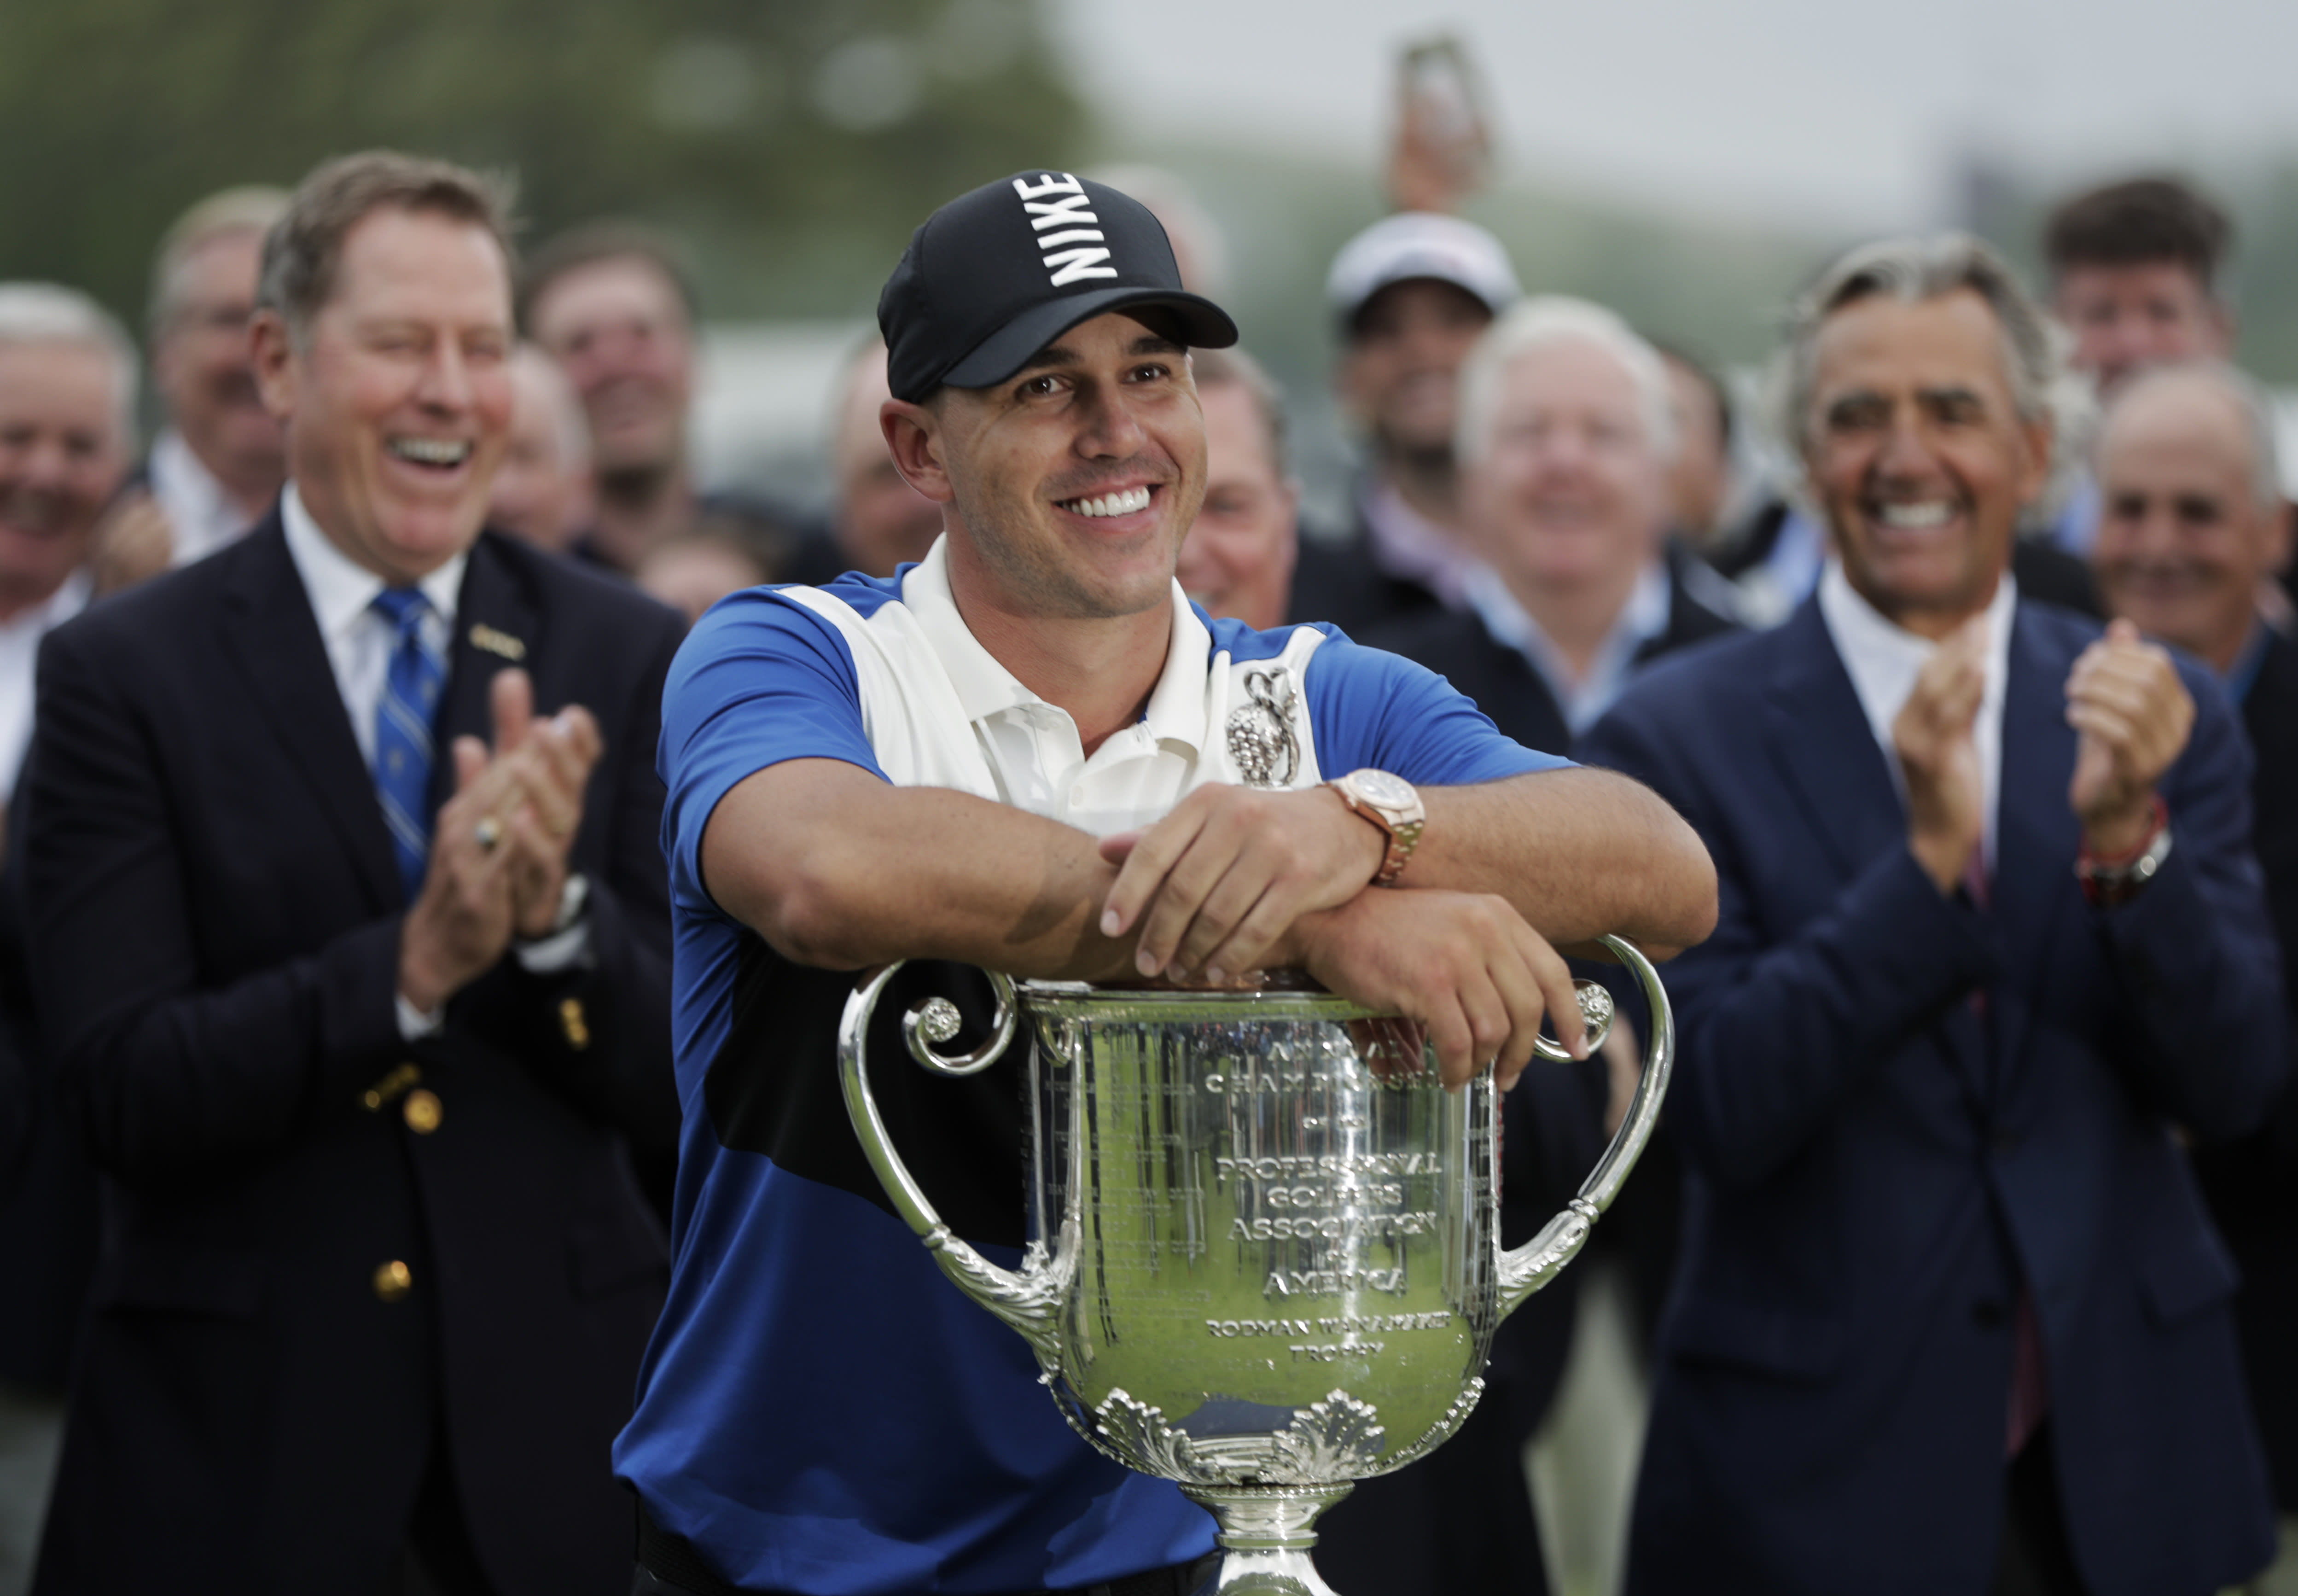 FILE - In this May 19, 2019, file photo, Brooks Koepka poses with the Wanamaker Trophy after winning the PGA Championship golf tournament at Bethpage Black in Farmingdale, N.Y. Koepka will try to become the first player to win the PGA Championship three straight times in stroke play starting Aug. 6, 2020, and there will not be anyone at Harding Park to cheer him on. (AP Photo/Julio Cortez, FIle)